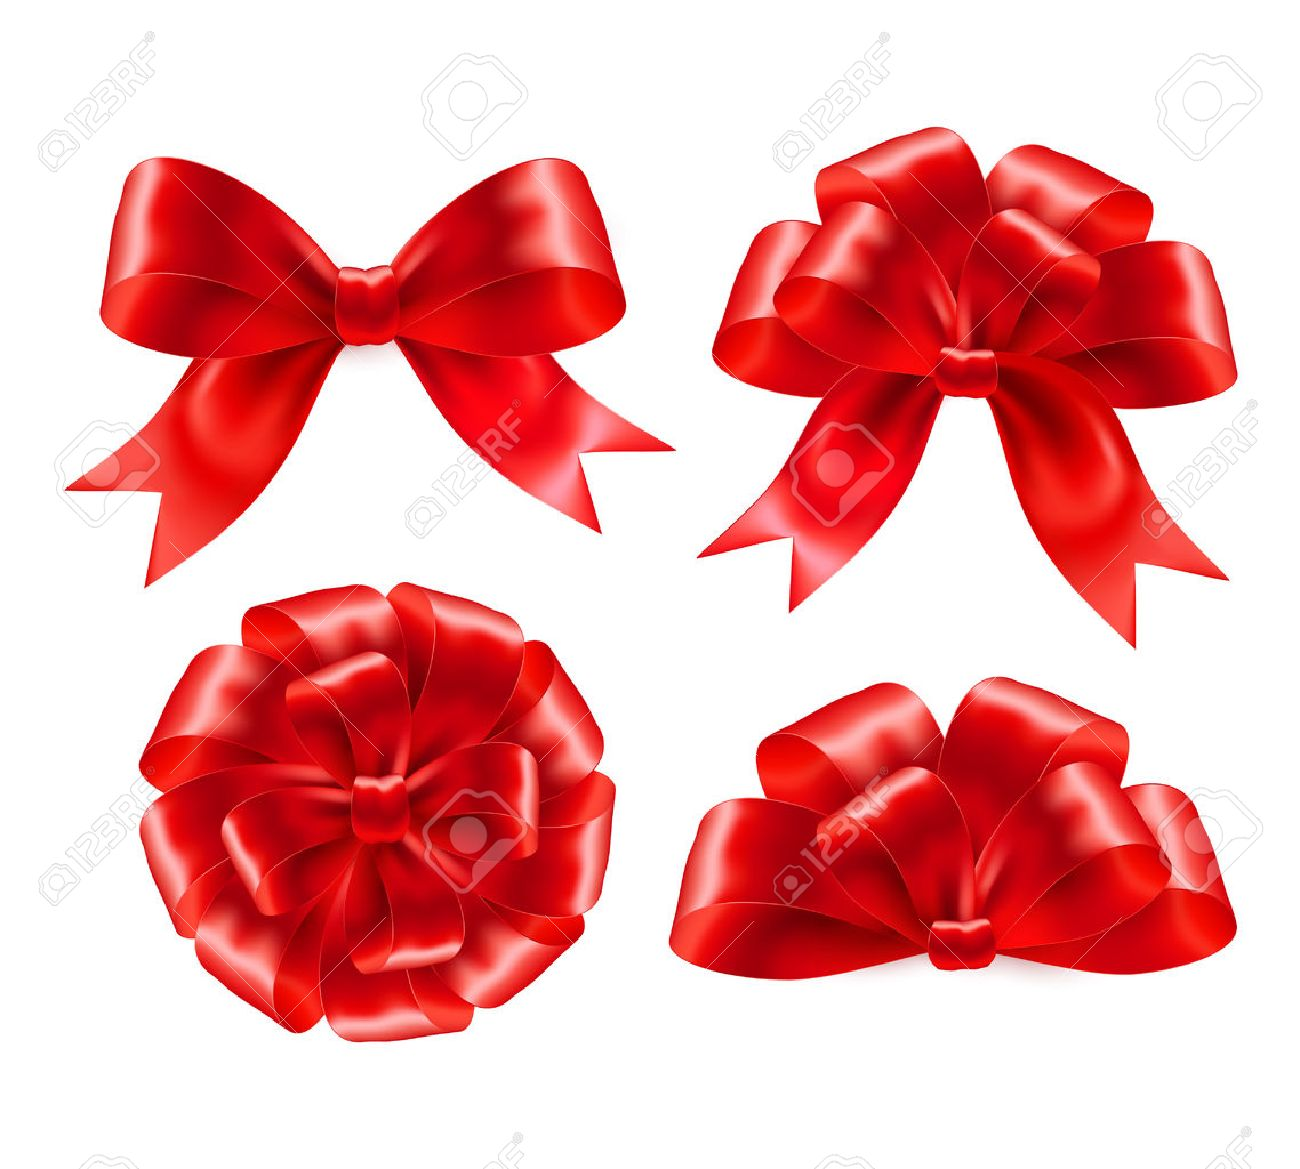 Red gift bows border with clipping path for easy background removing - Ribbon Set Of Red Gift Bows With Ribbons Vector Illustration Eps 10